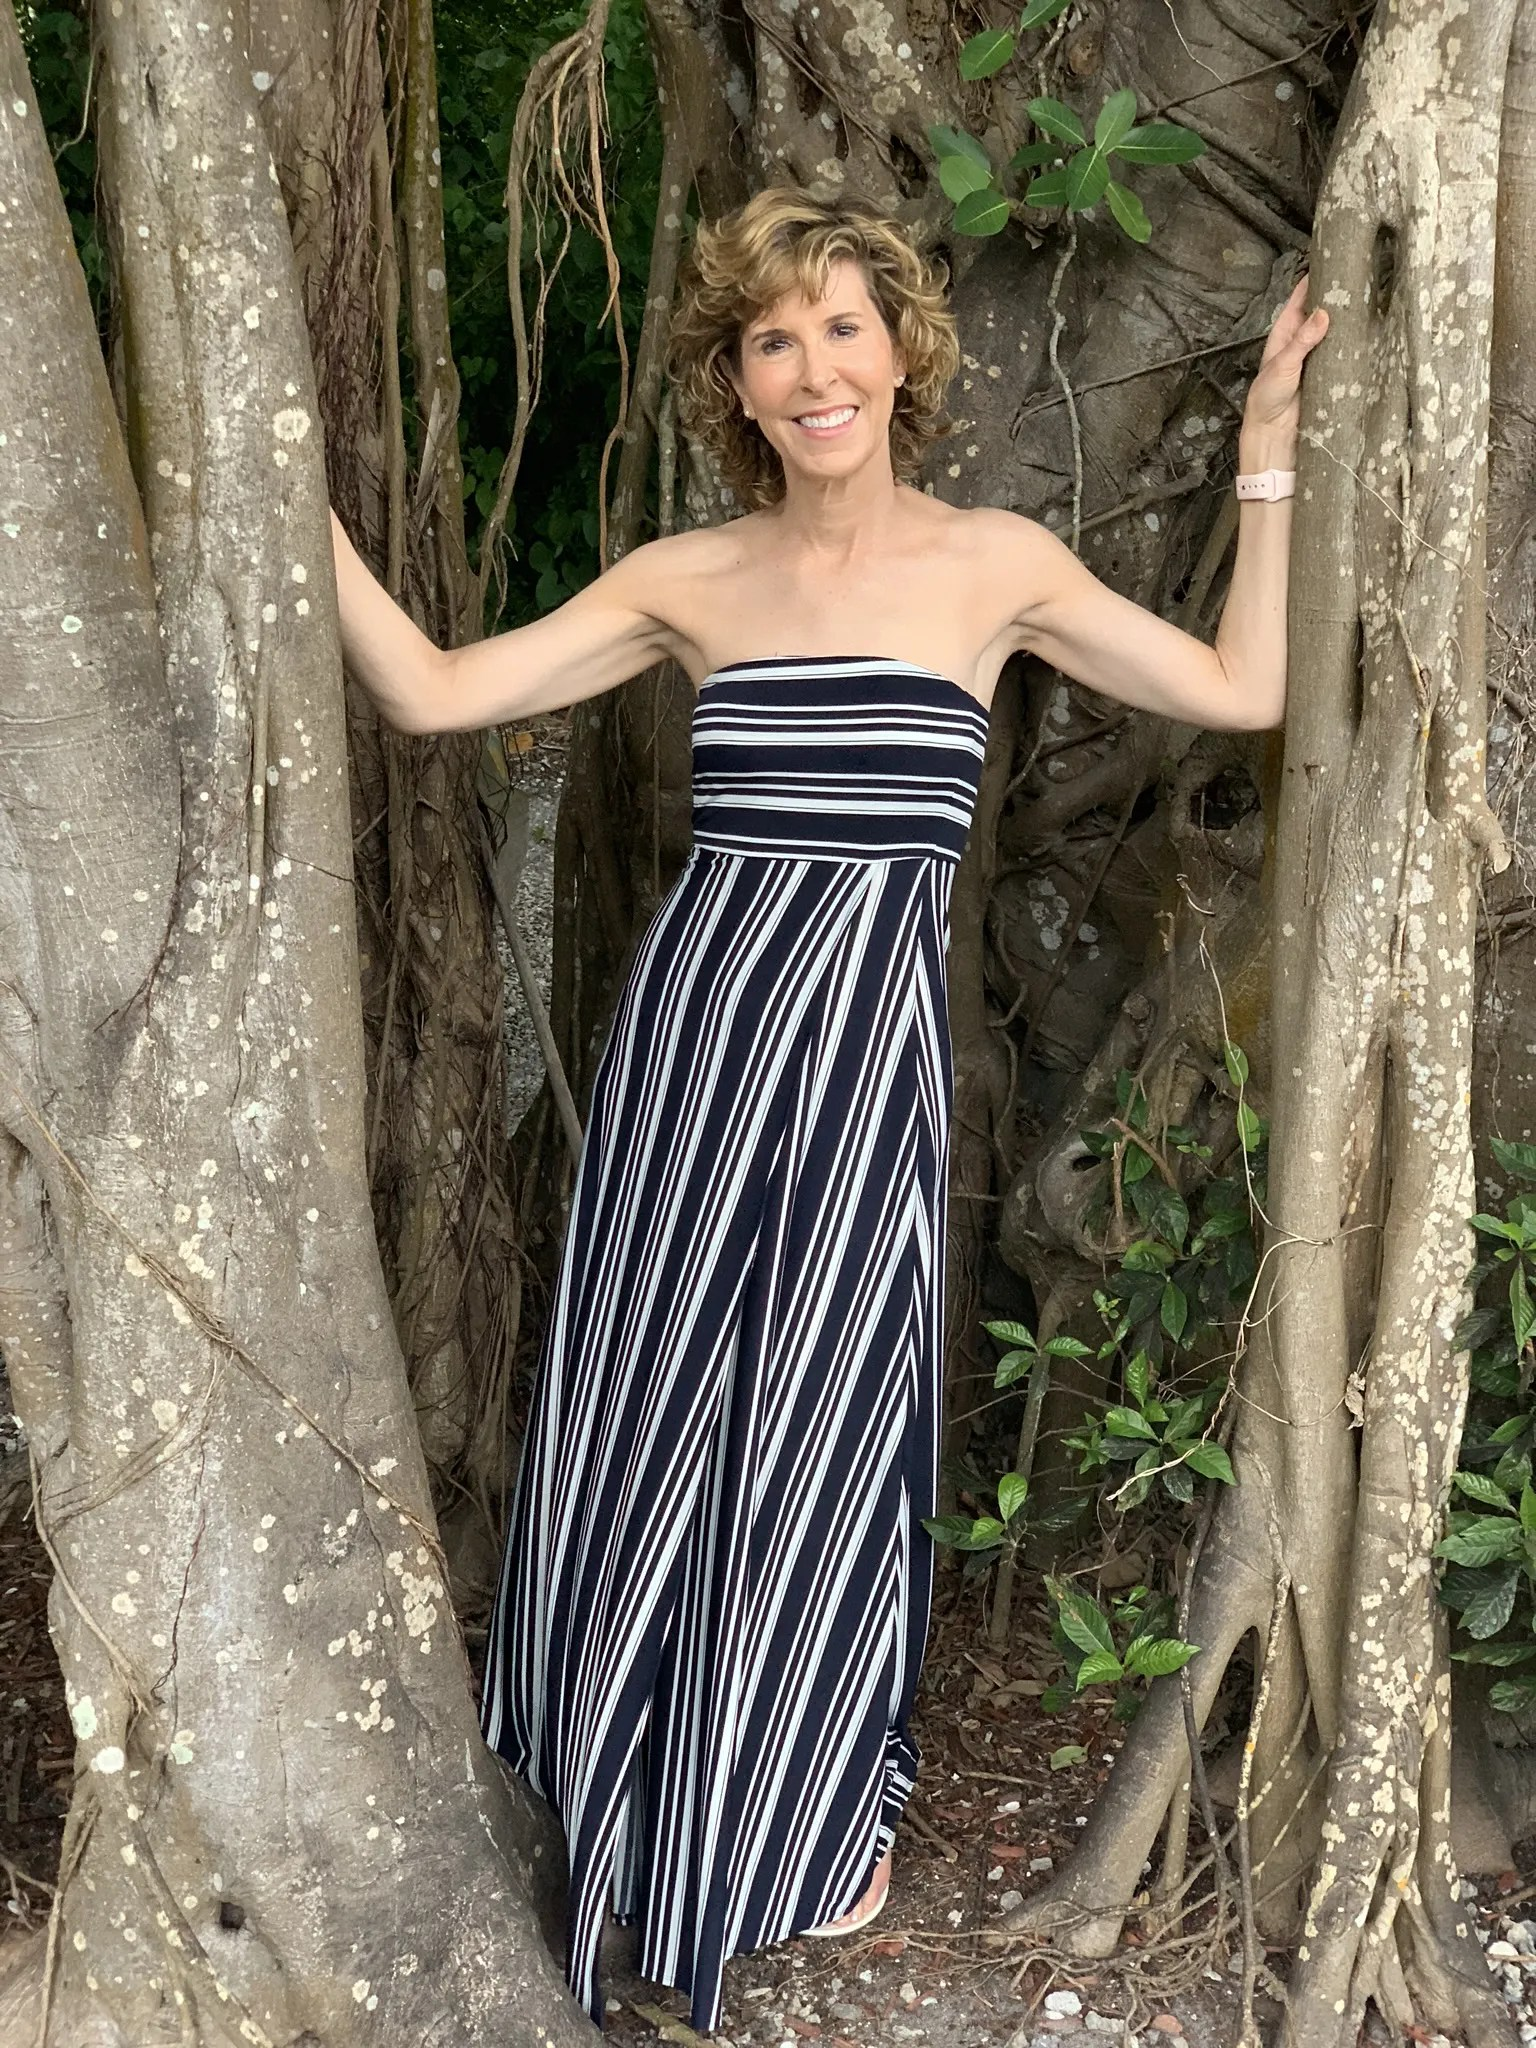 woman wearing blue and white maxi dress standing inside a tree trunk